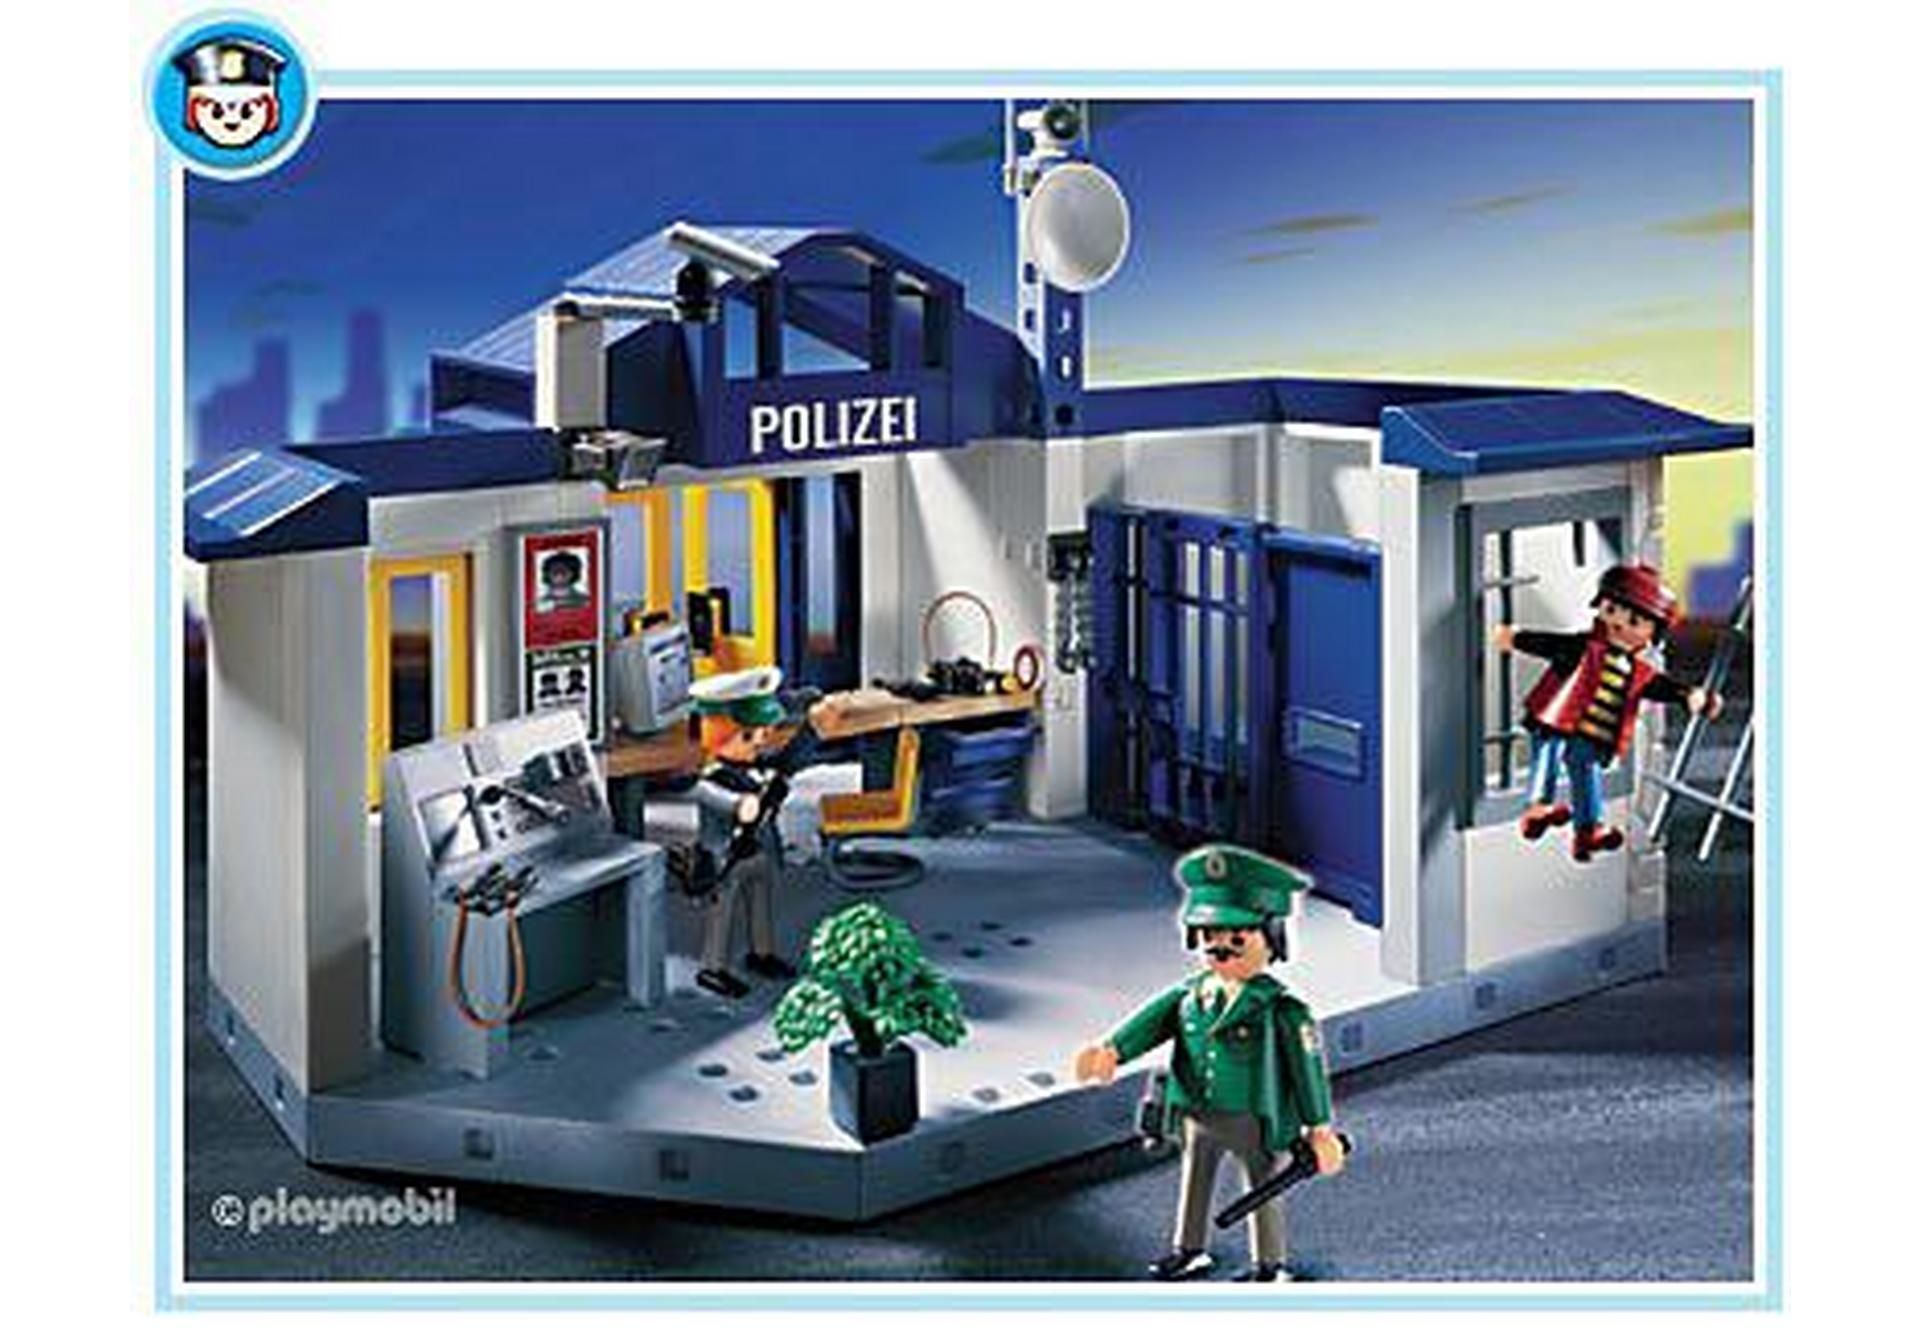 Playmobil polizeistation anleitung